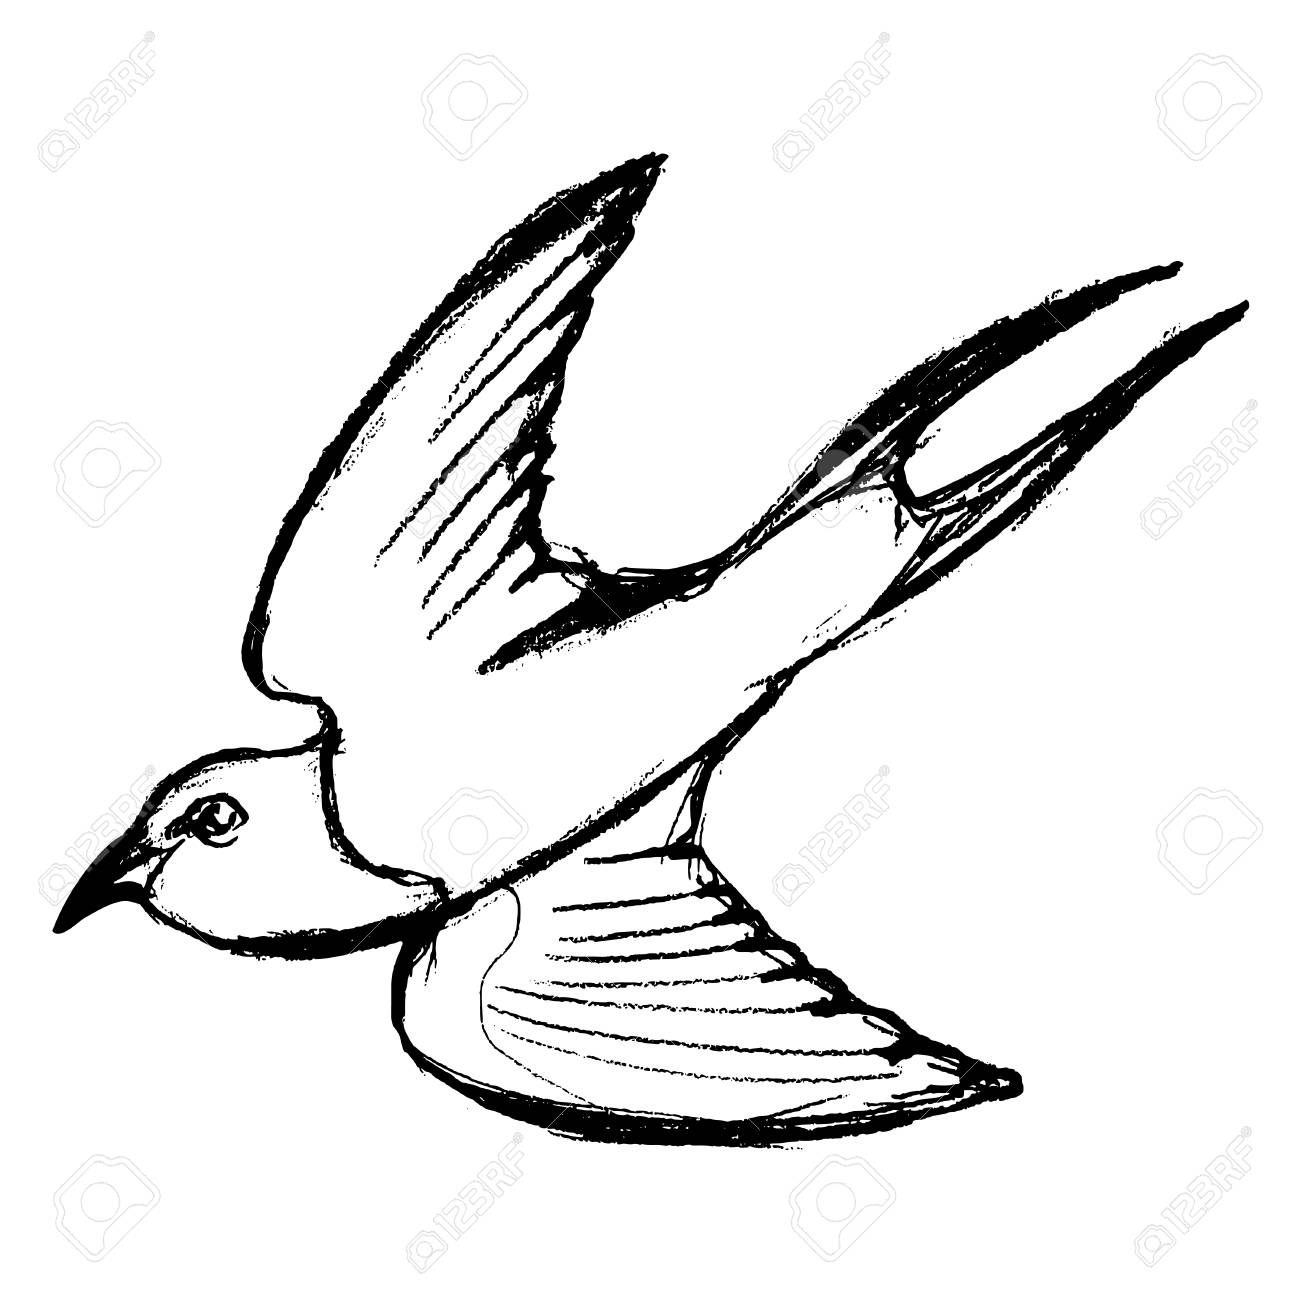 1300x1300 Vector, Sketch, Hand Drawn Illustration Of Swallow Royalty Free